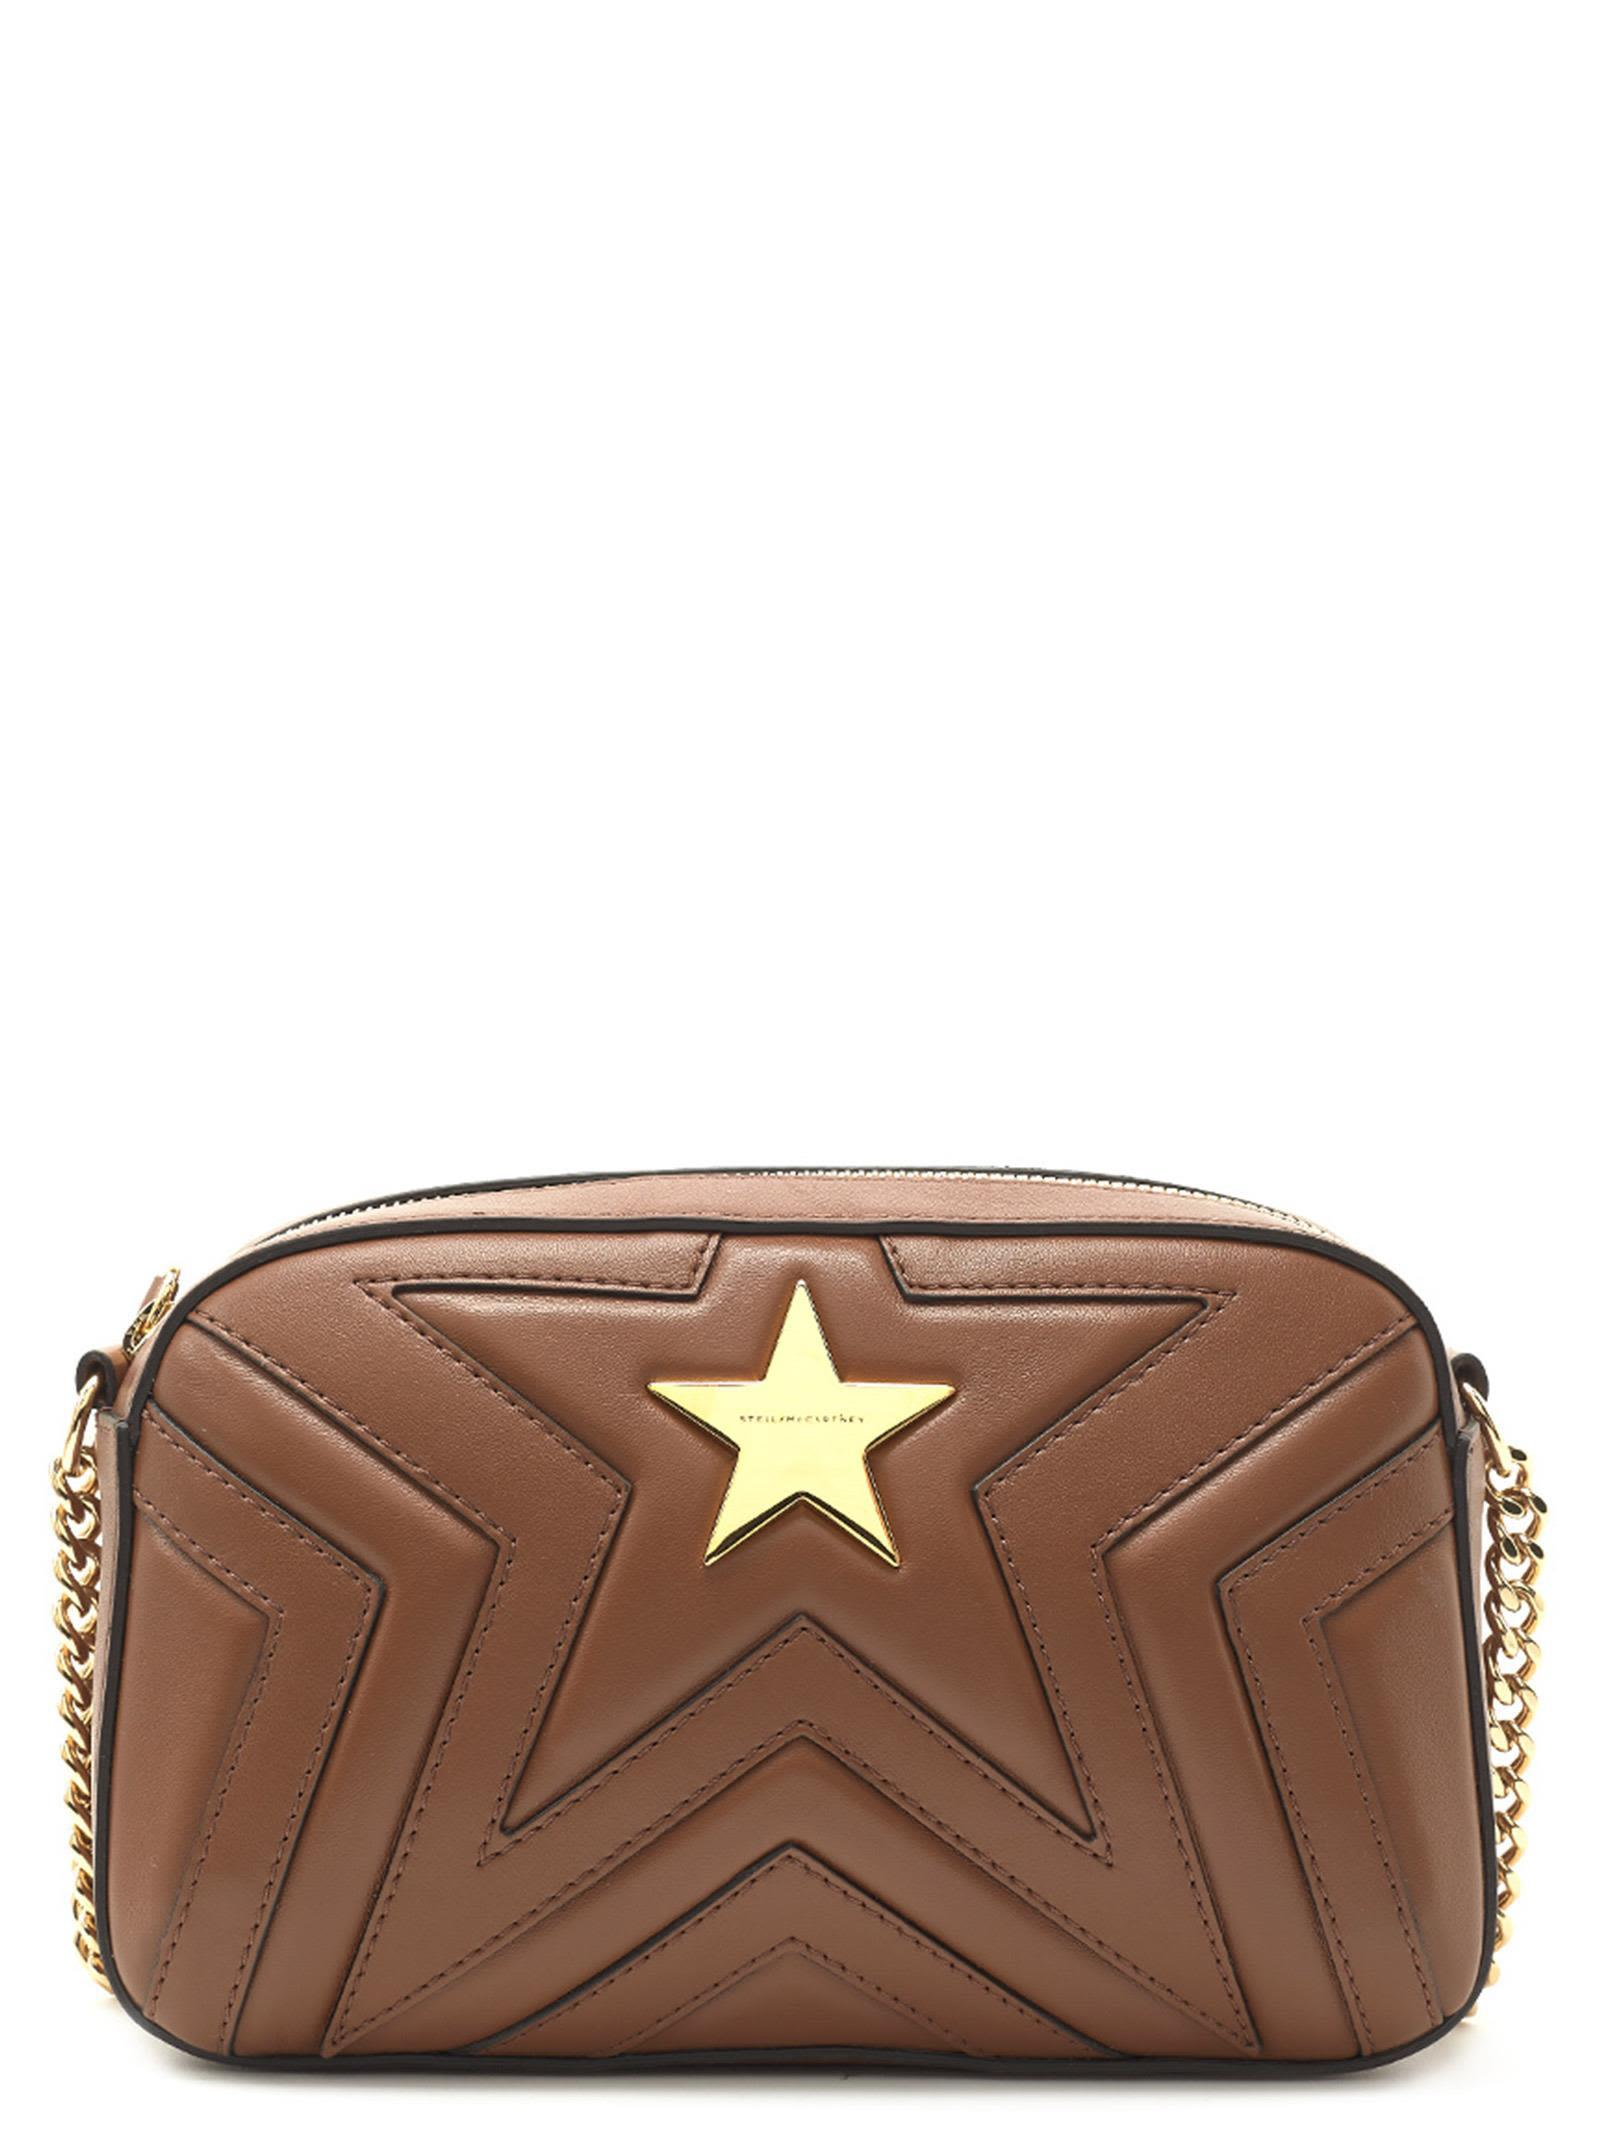 Stella Mccartney Bag In Brown